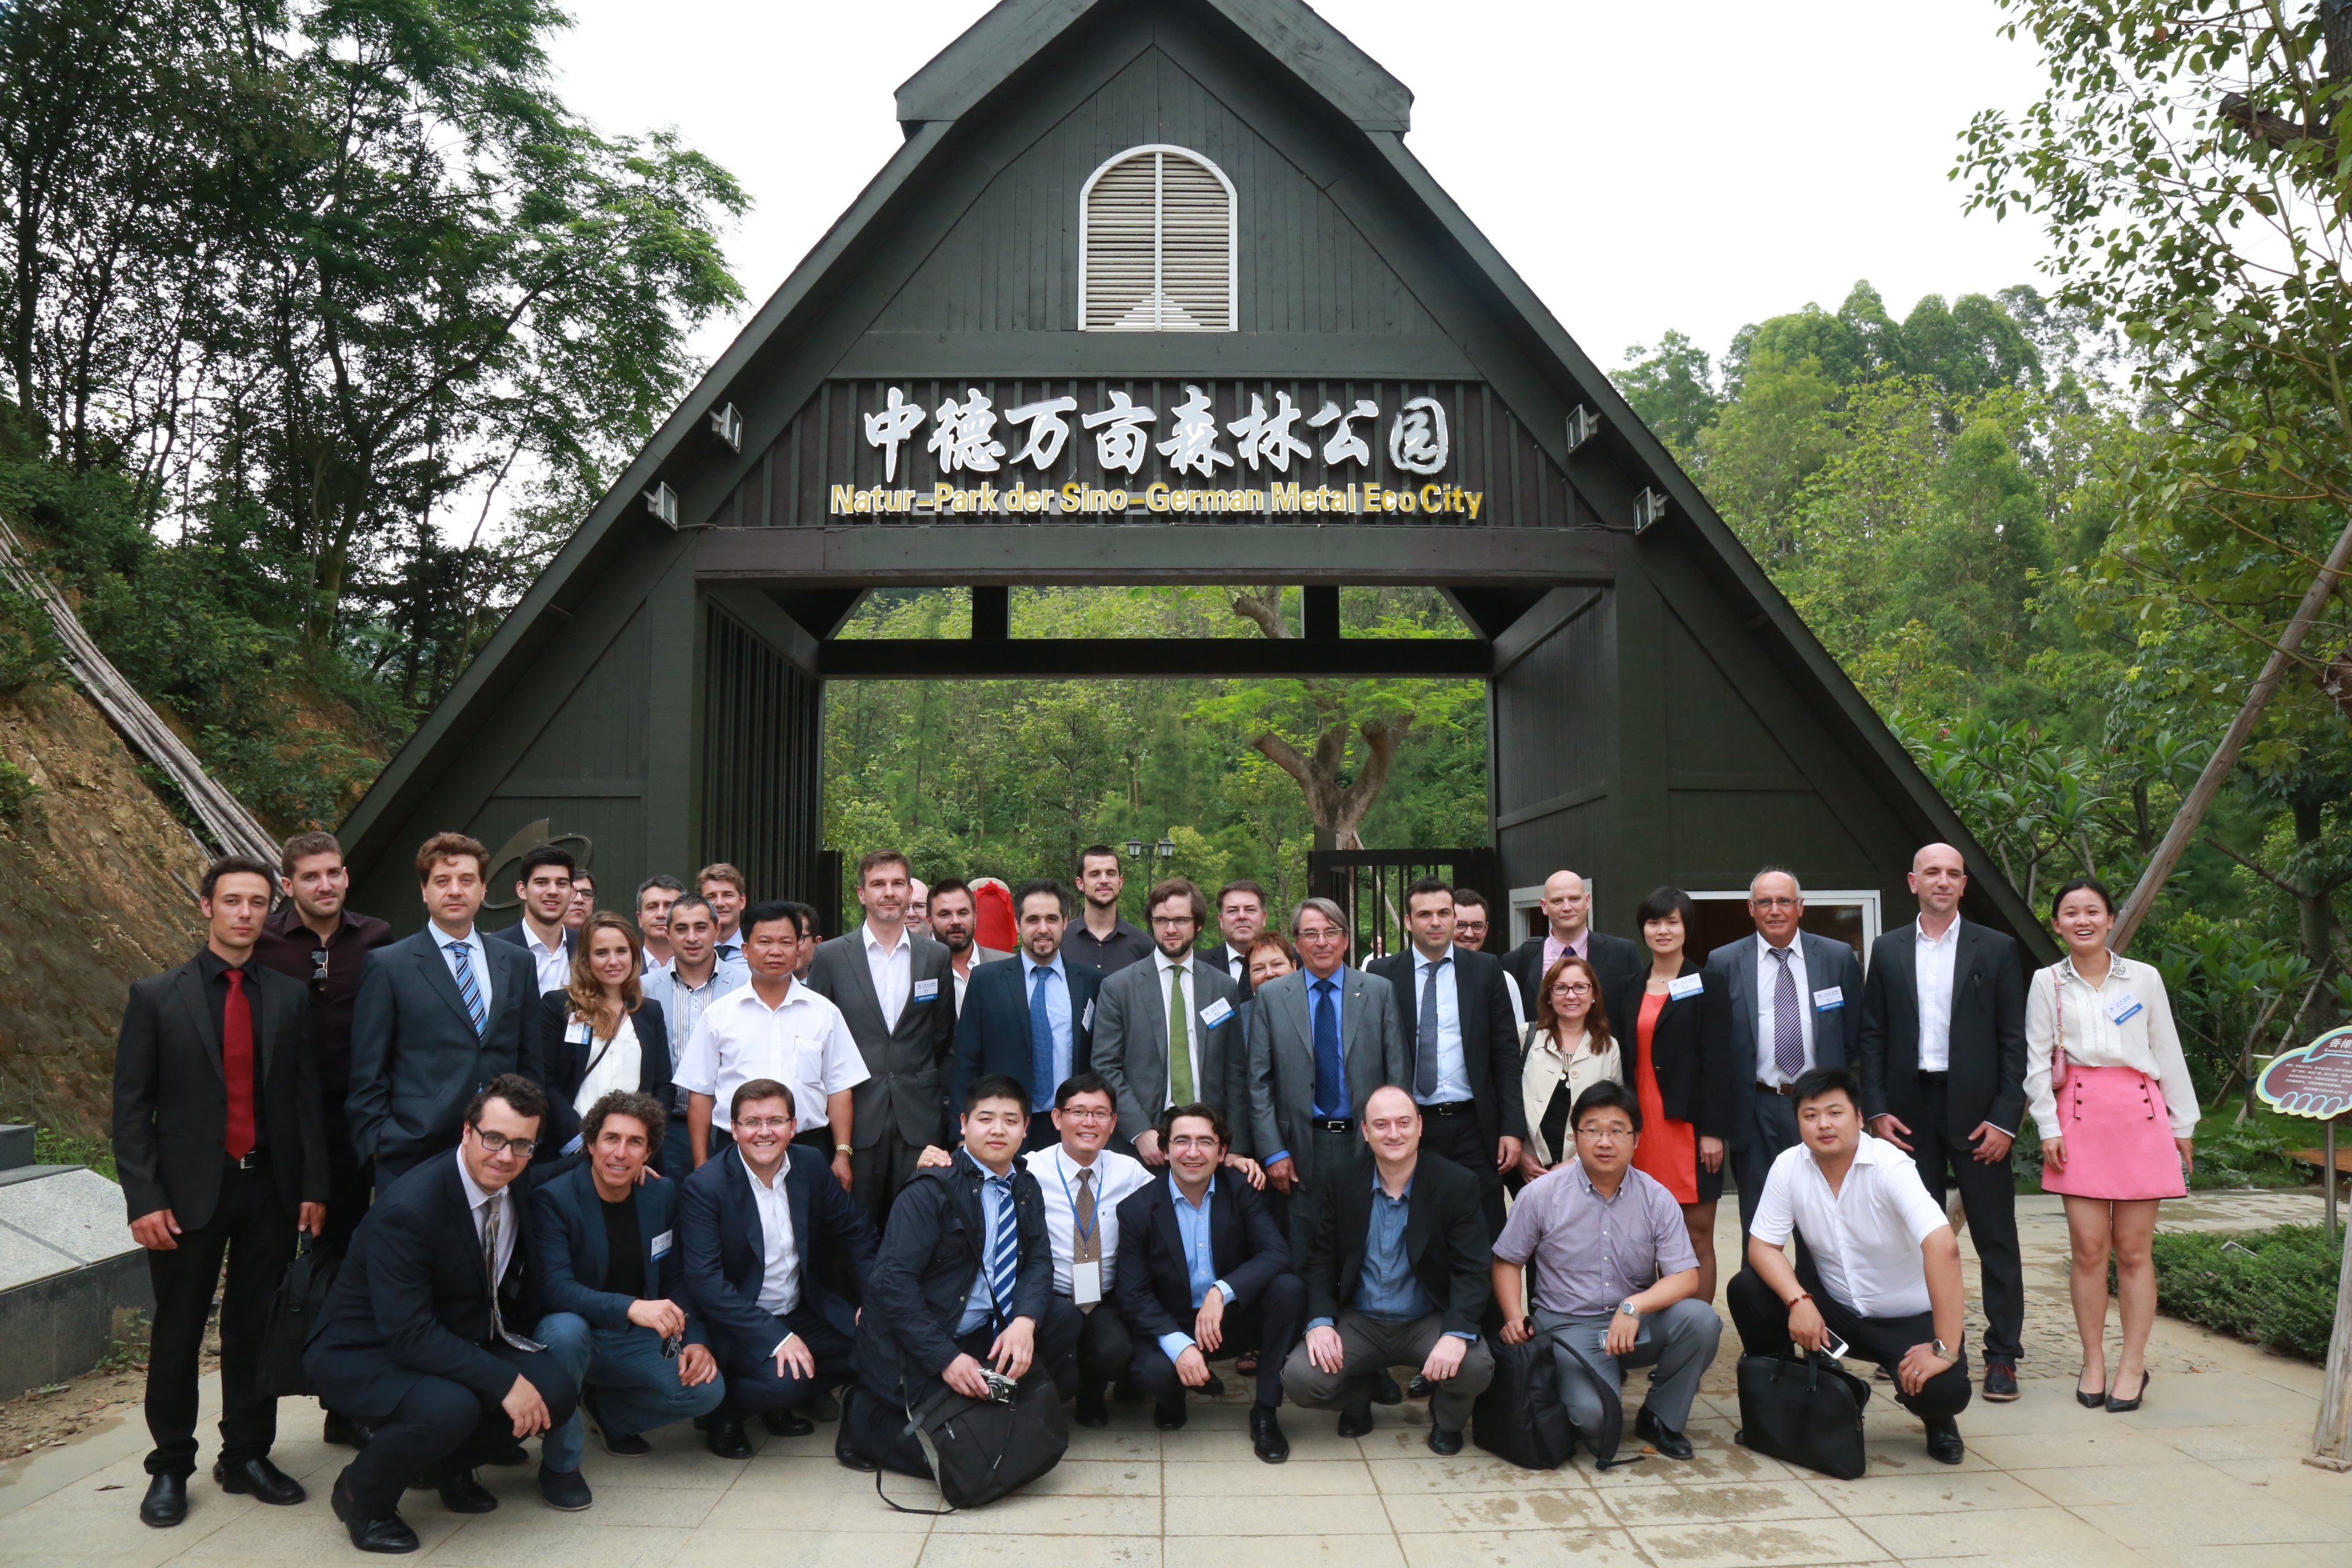 SIARQ in Jieyang, China to create new business opportunities in Zhongde Metal Eco-city